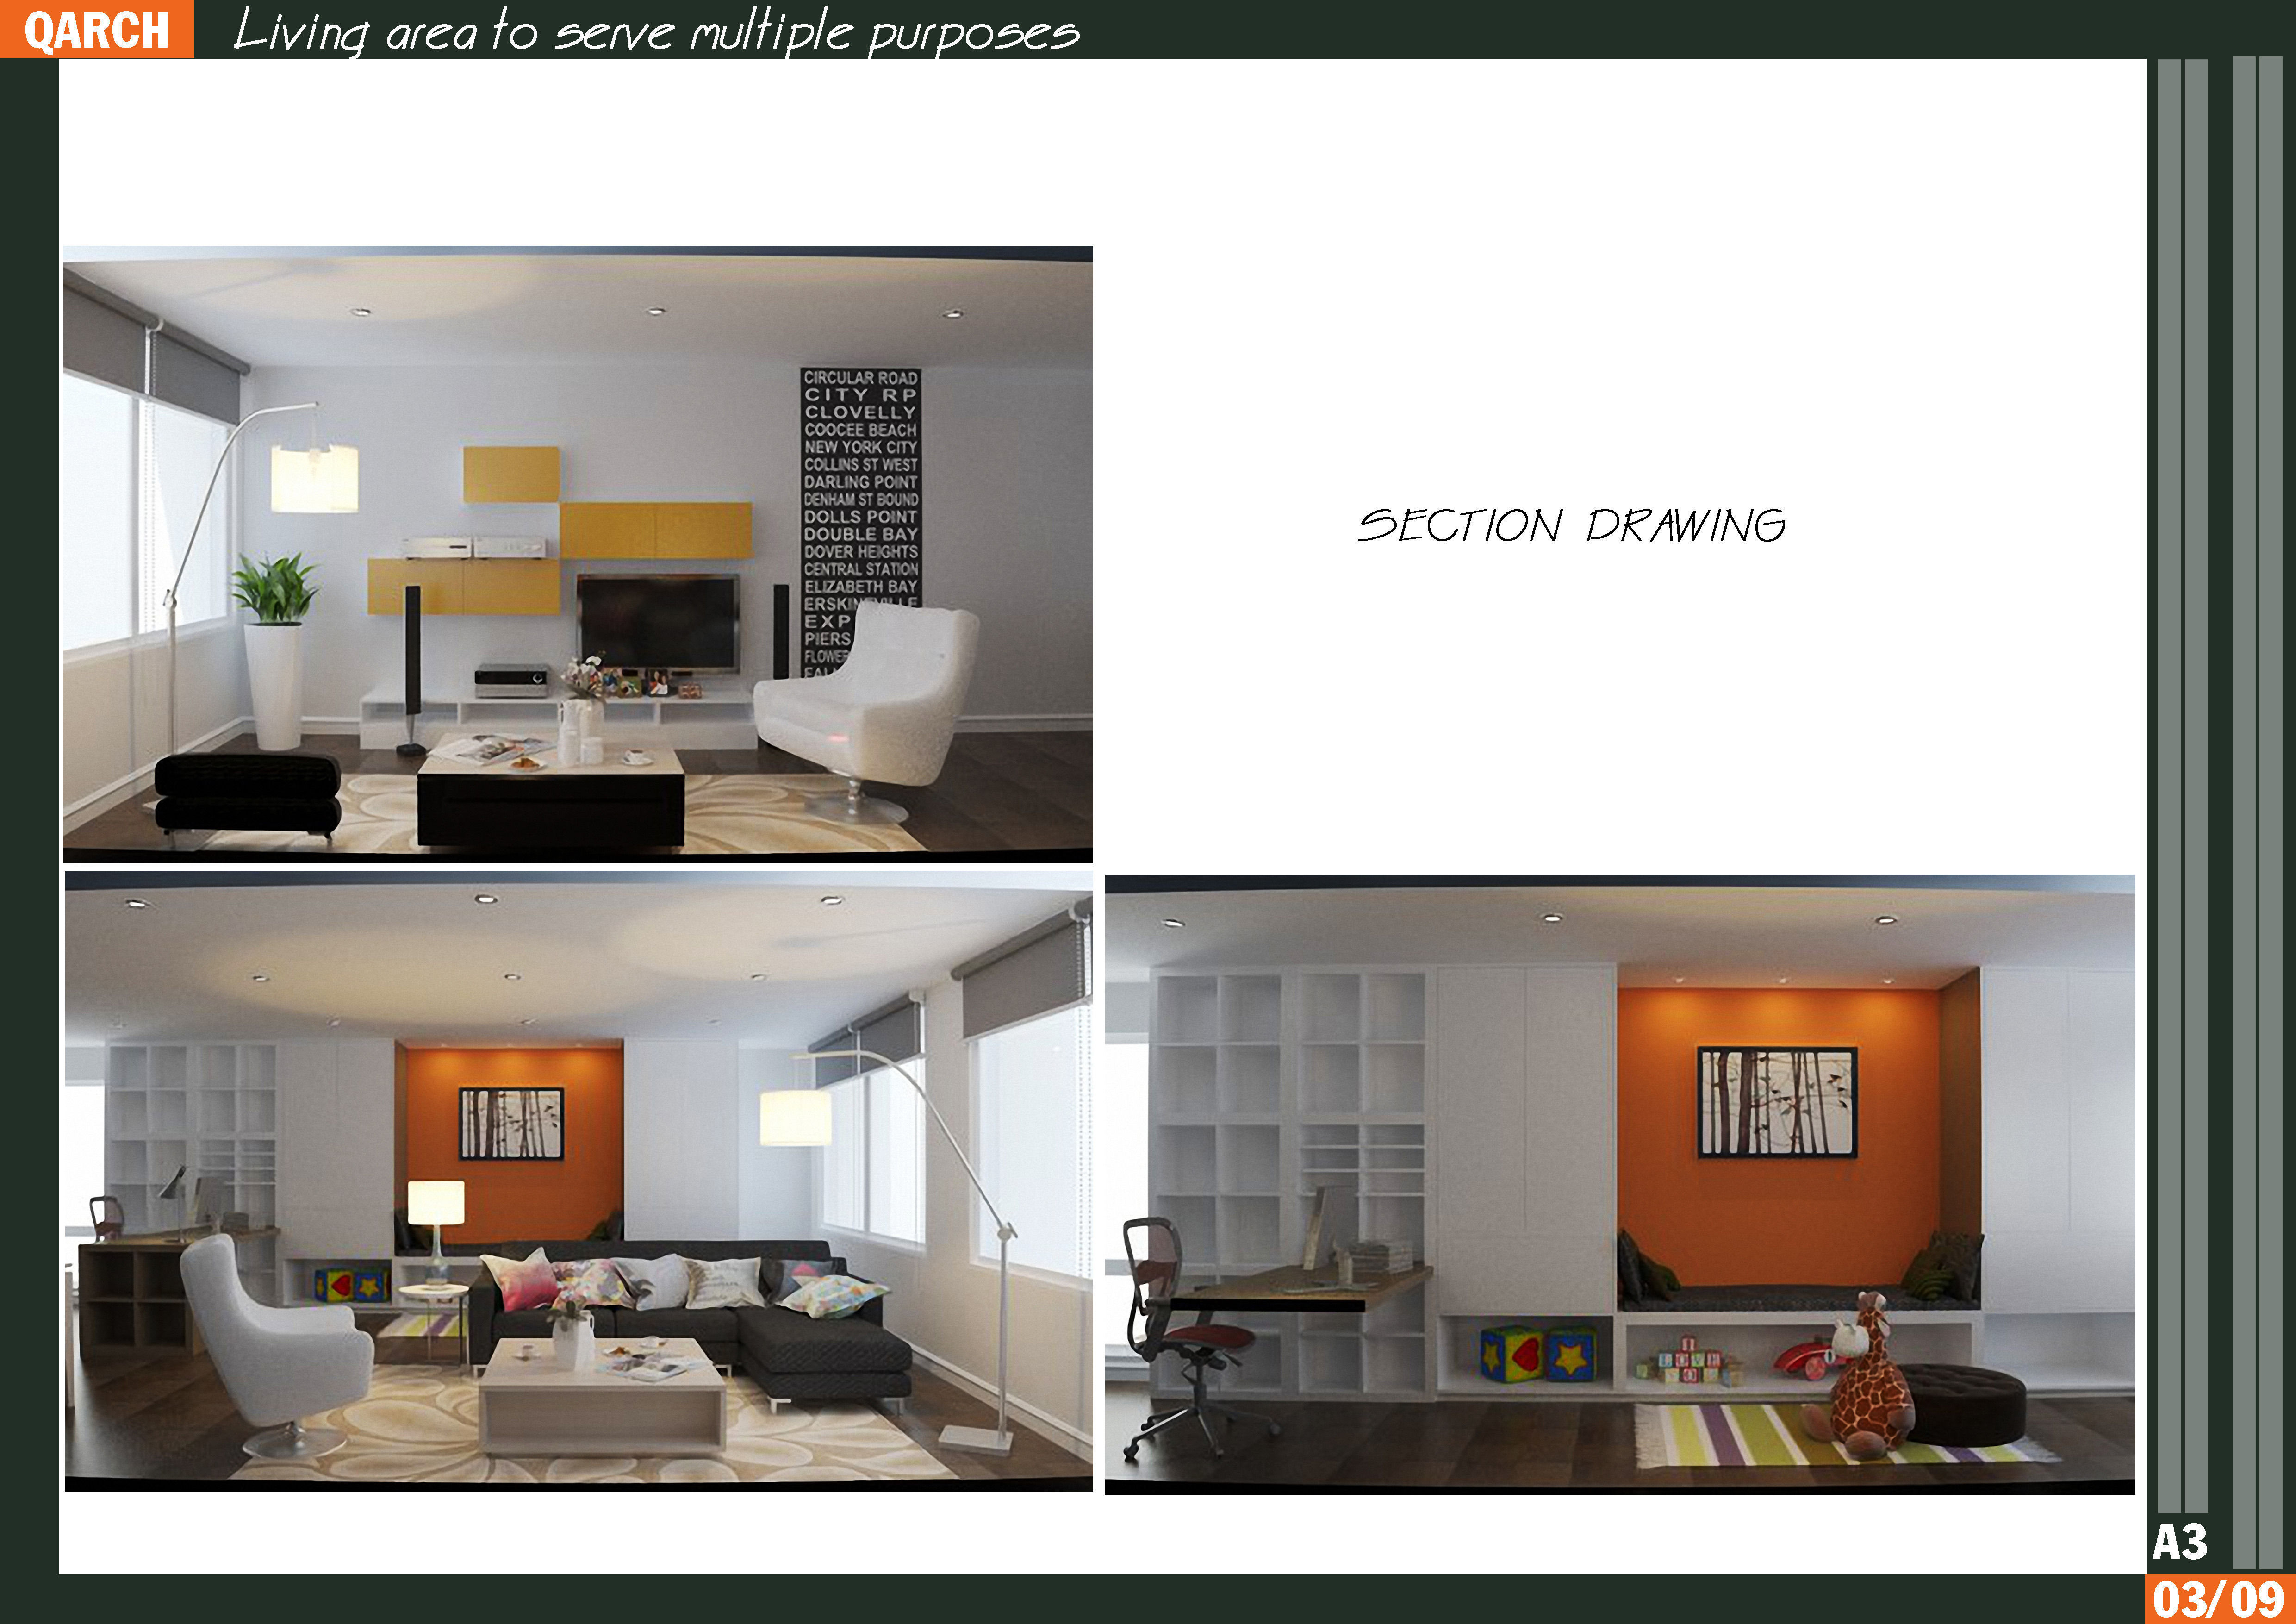 8 - Living area to serve multiple purposes 3D model MAX